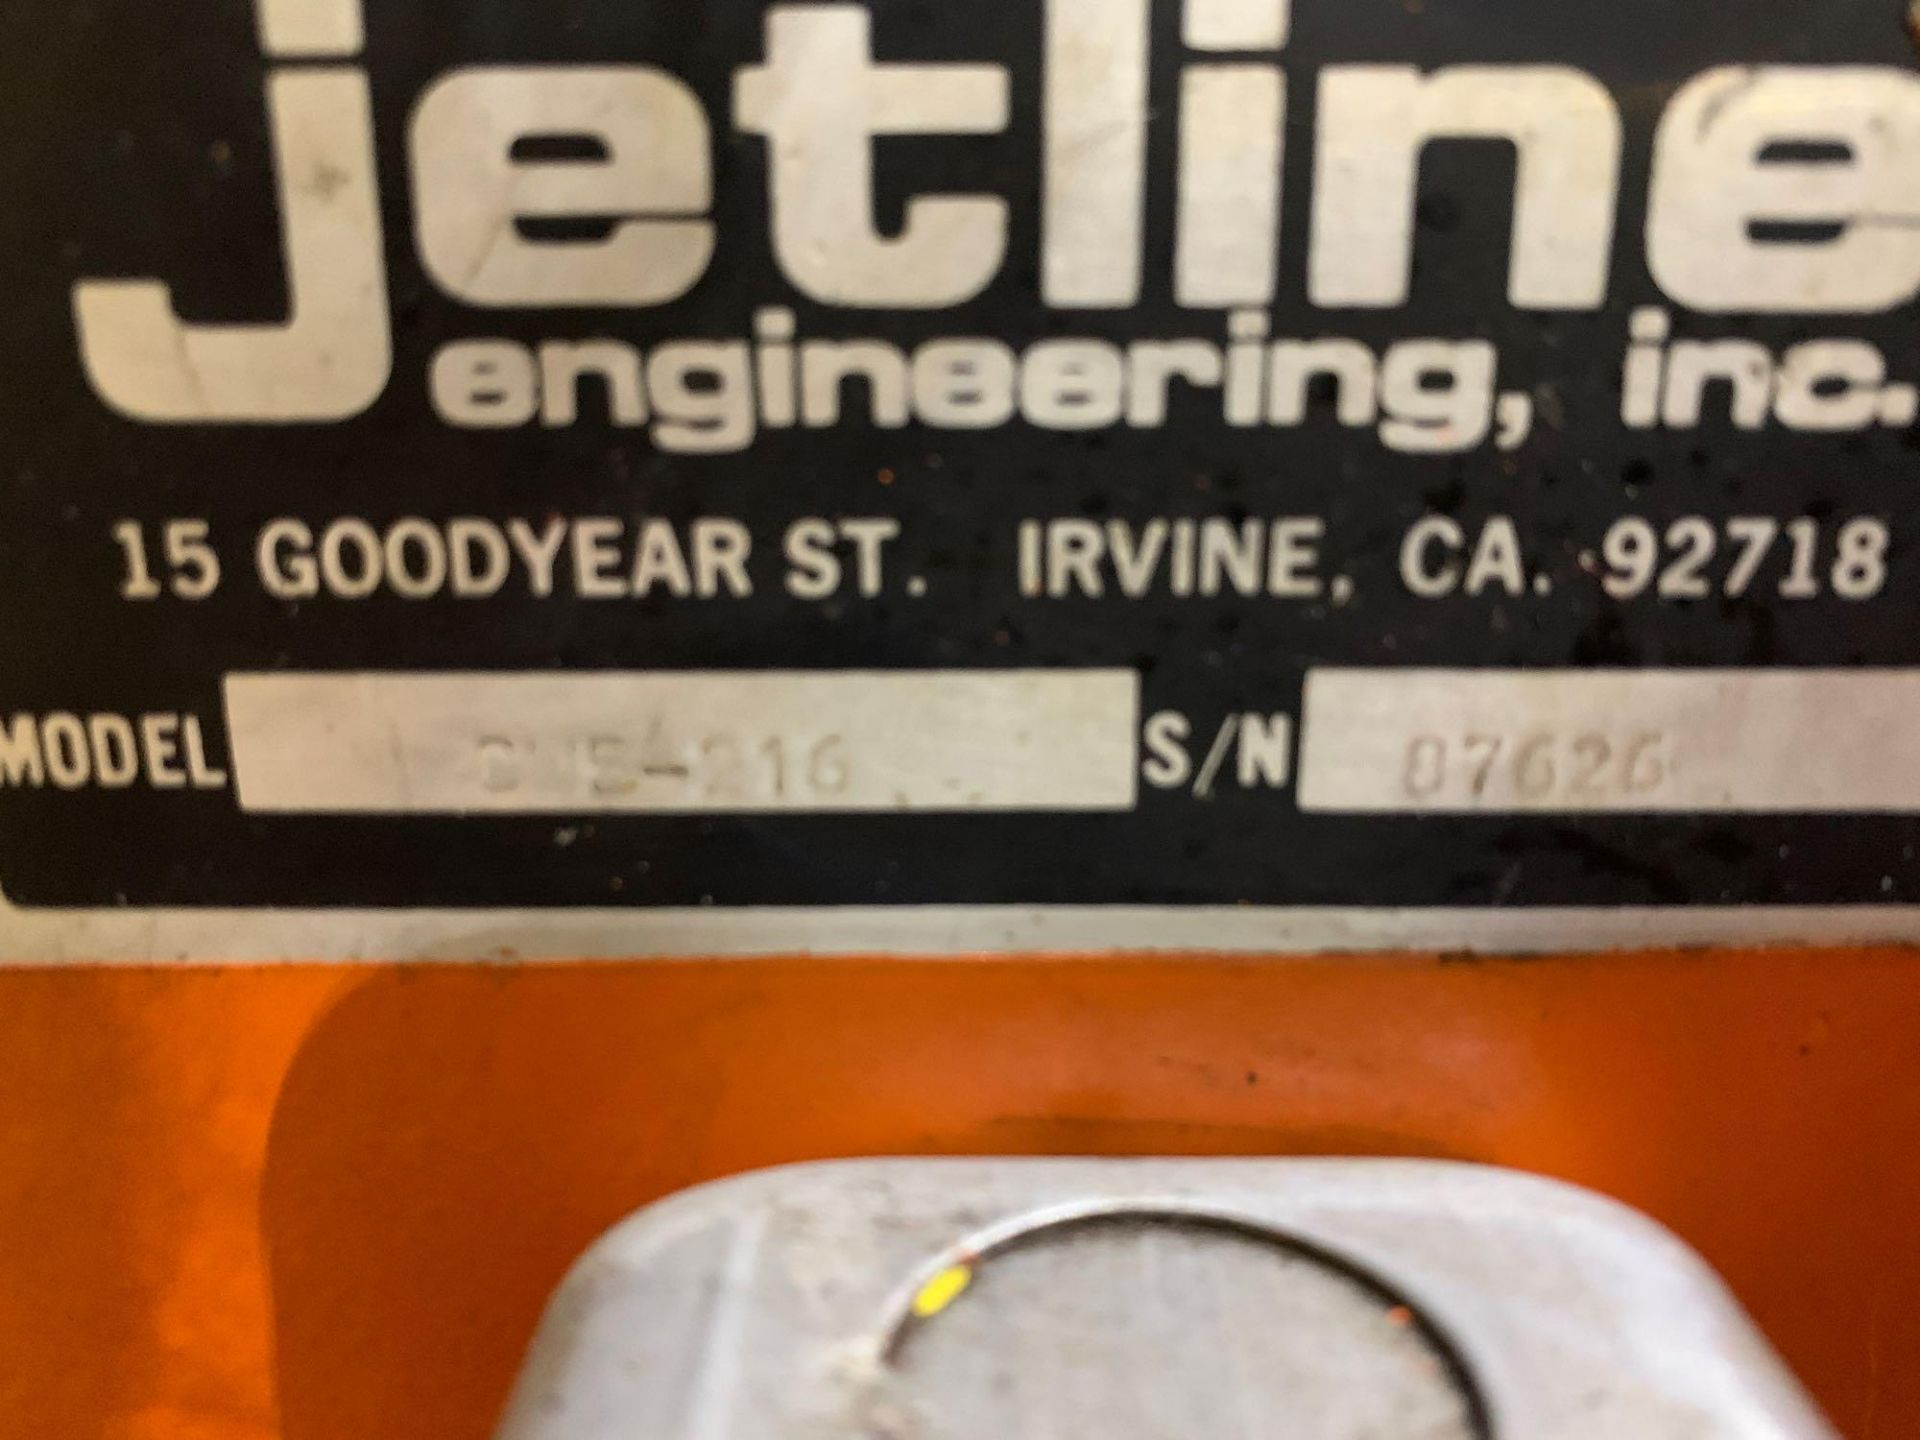 Jetline Welding Positioner Model CU5-216 Serial Number: 07625 Pipe Weld Positioner with Tail Stock I - Image 15 of 15